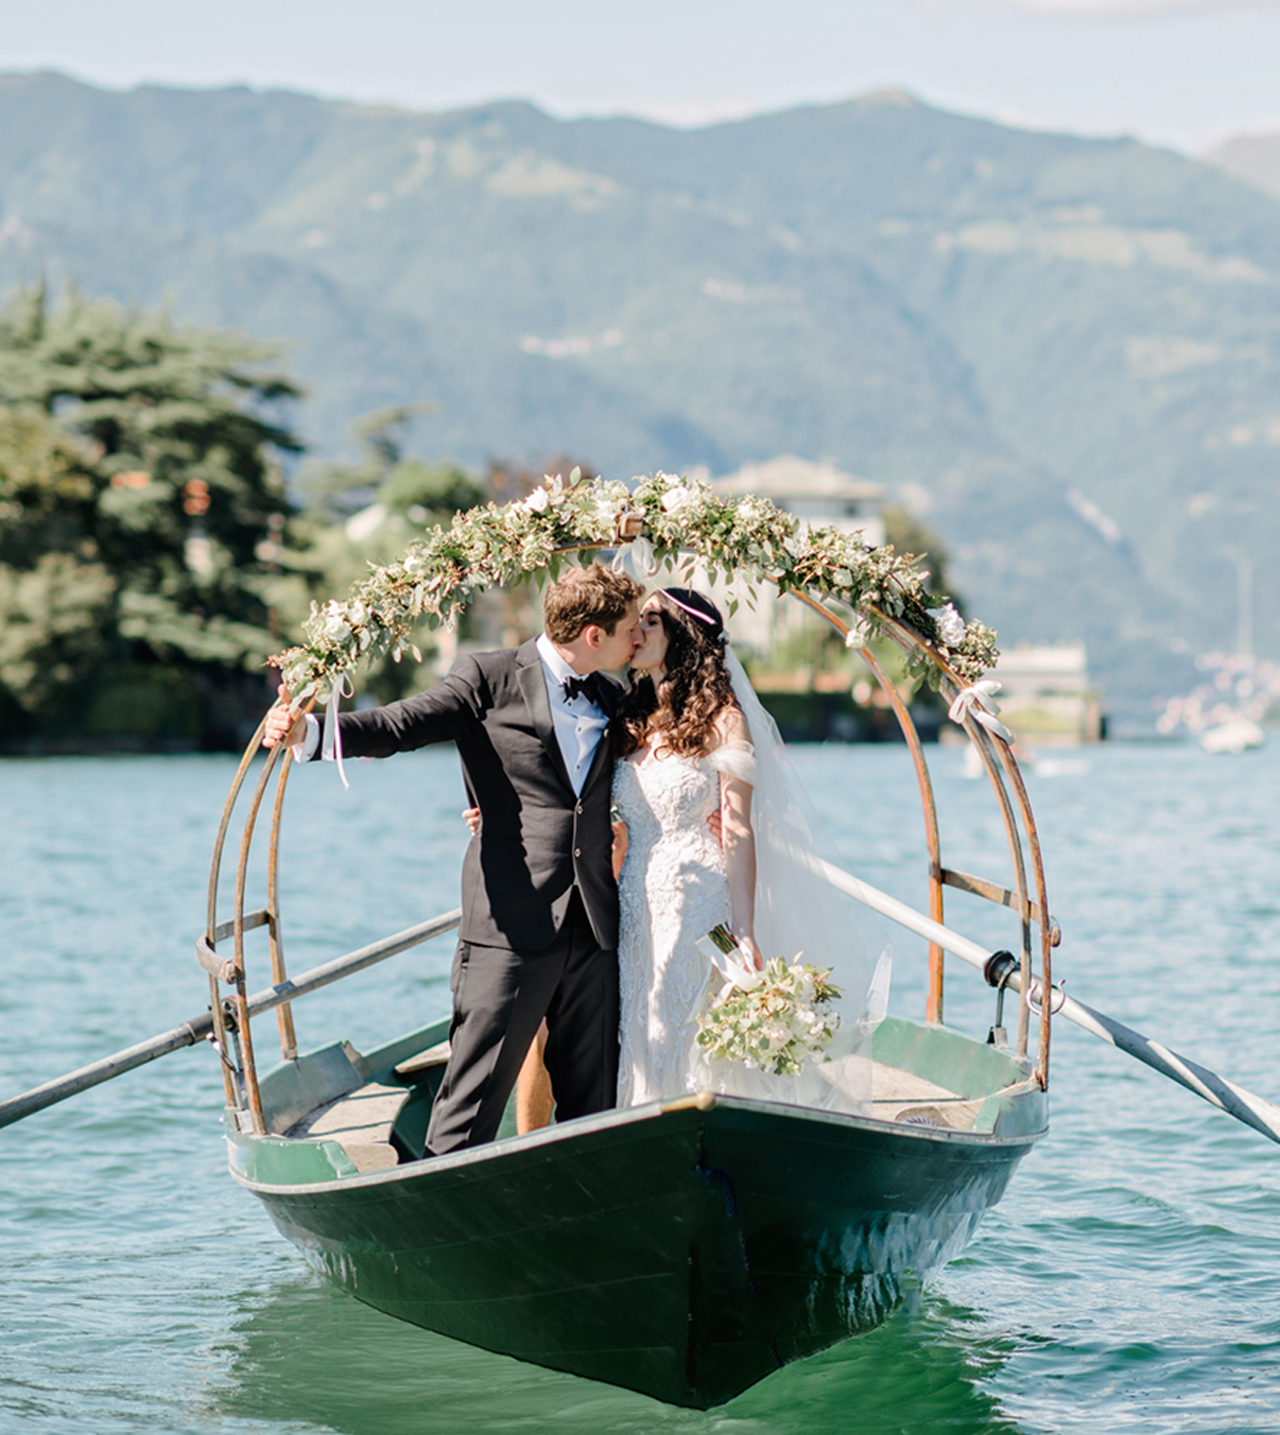 Bride-and-groom-on-Lucia-row-boat-on-Lake-Como